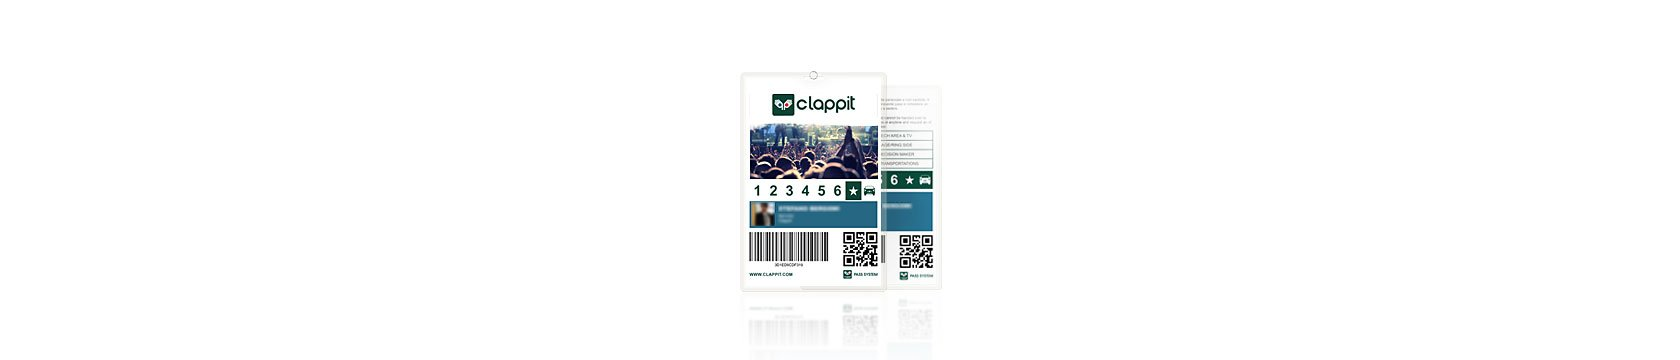 Clappit-Full-Ticketing-Pass-Crew-Venue-Grafica-Personalizzata-Brand-Evento-A4-Top-001